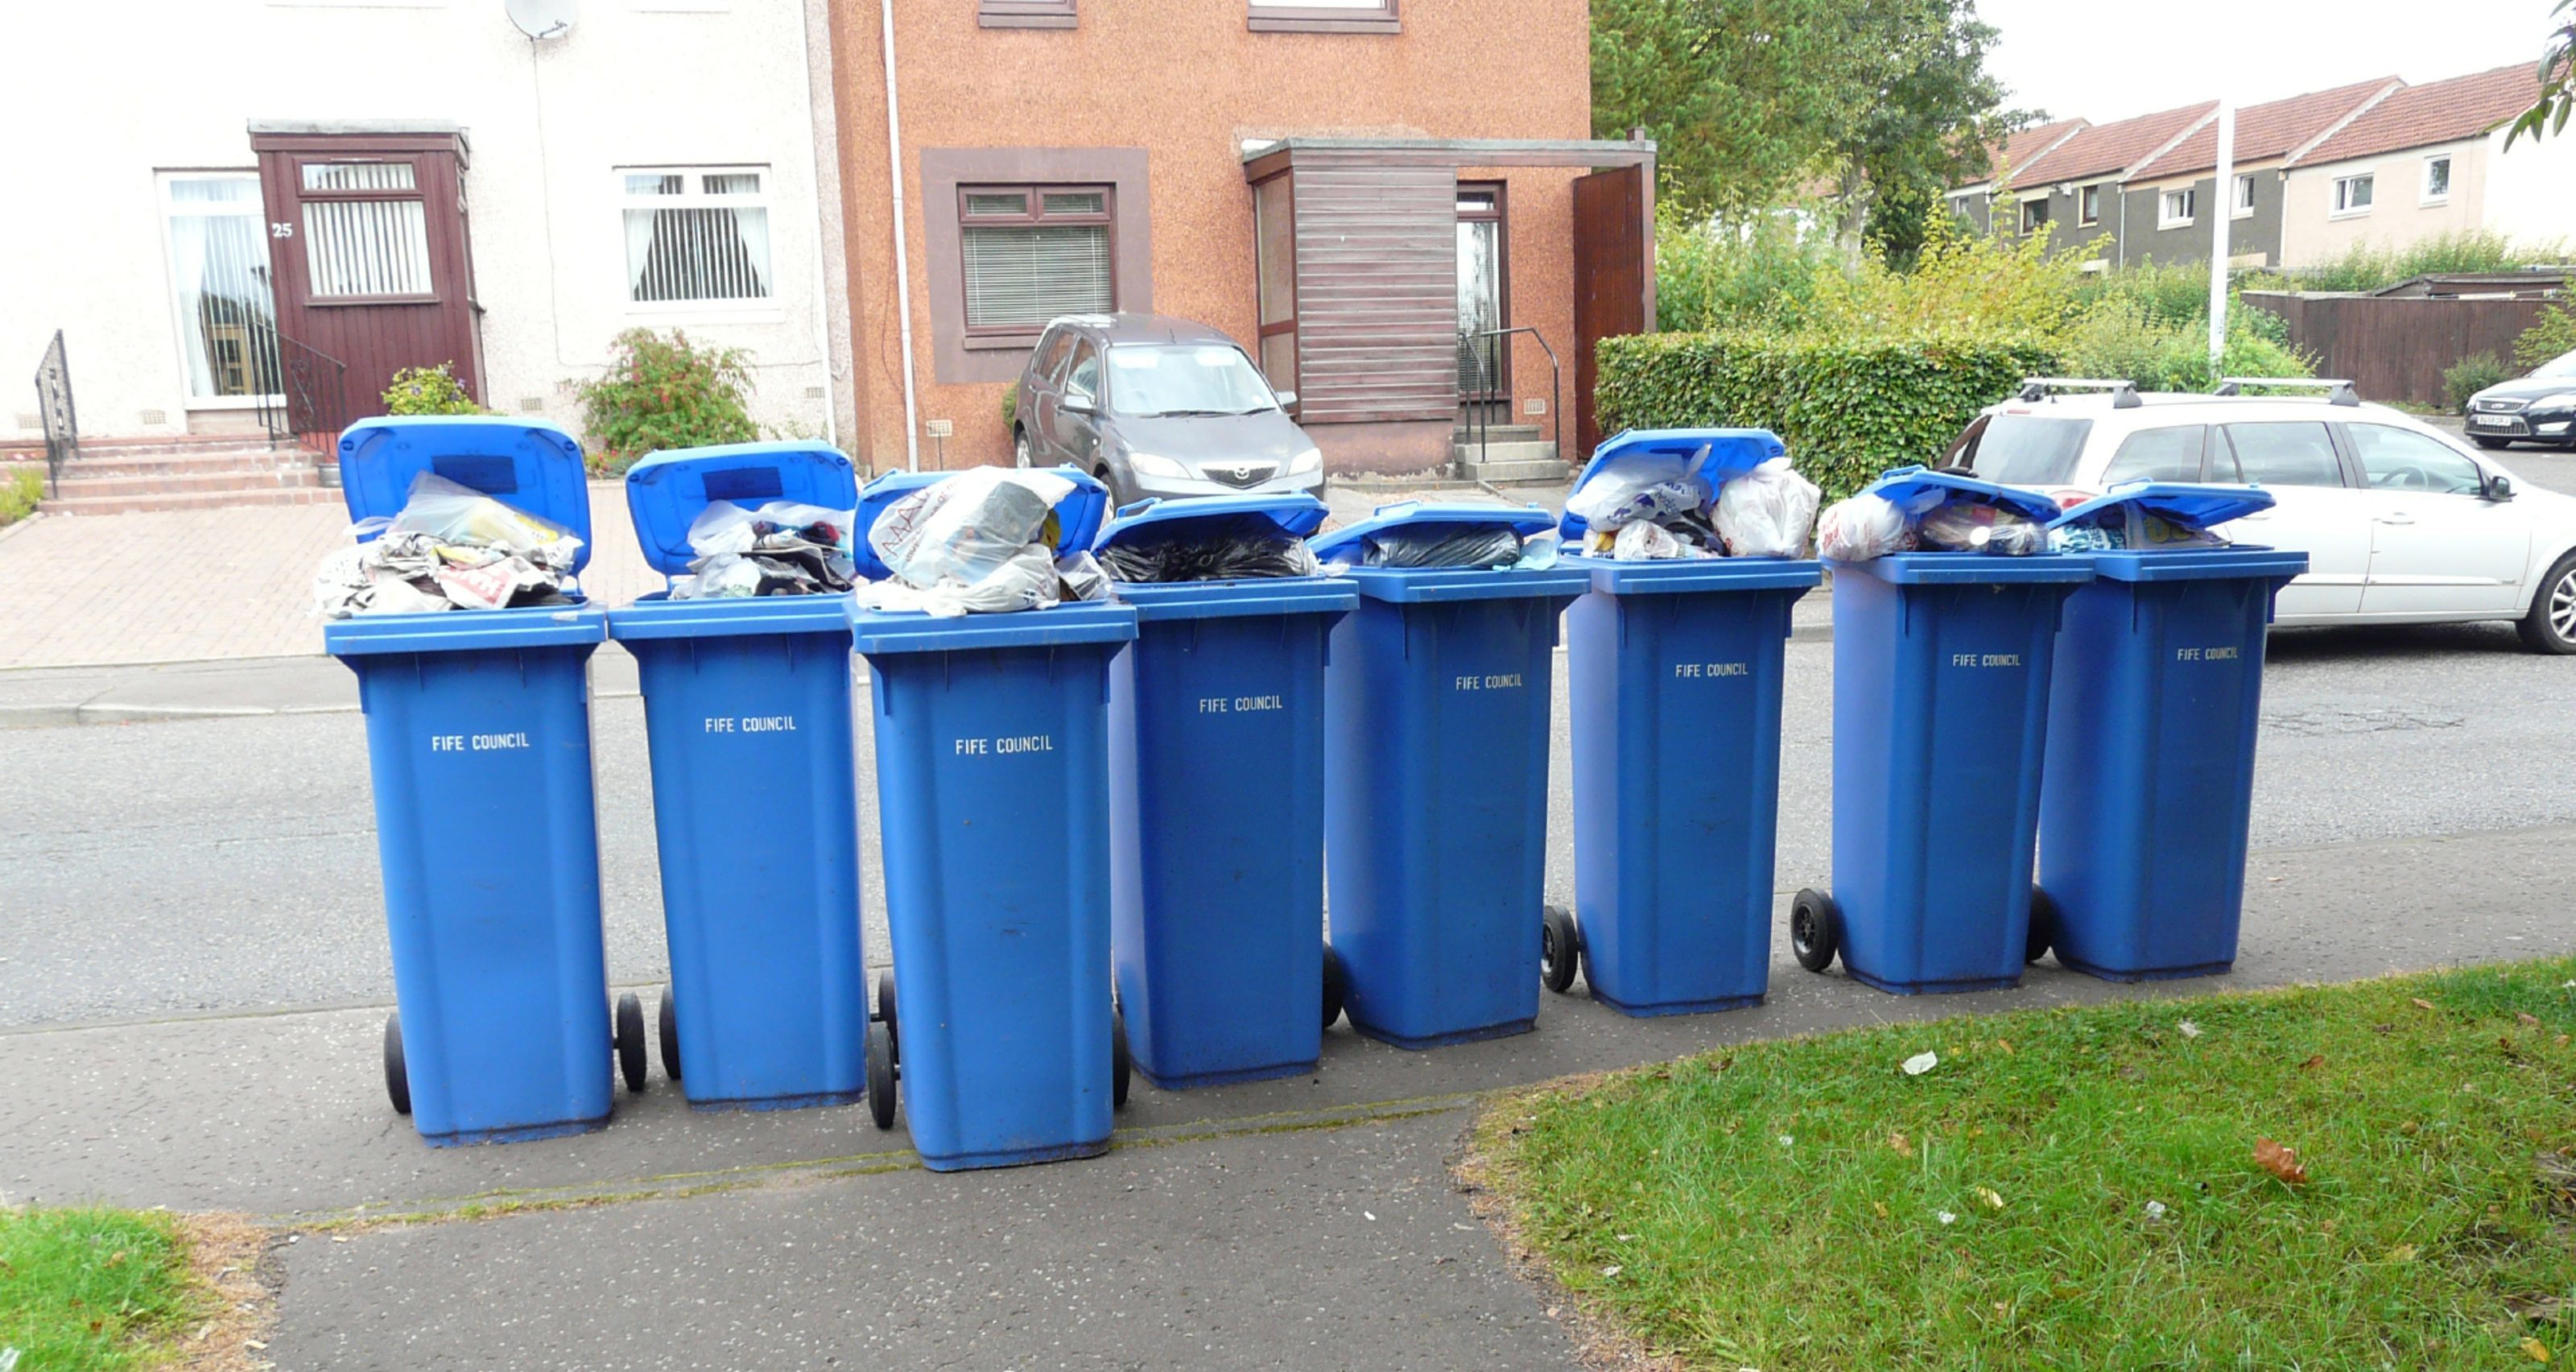 Claims were made that current landfill bins were too small for monthly collections